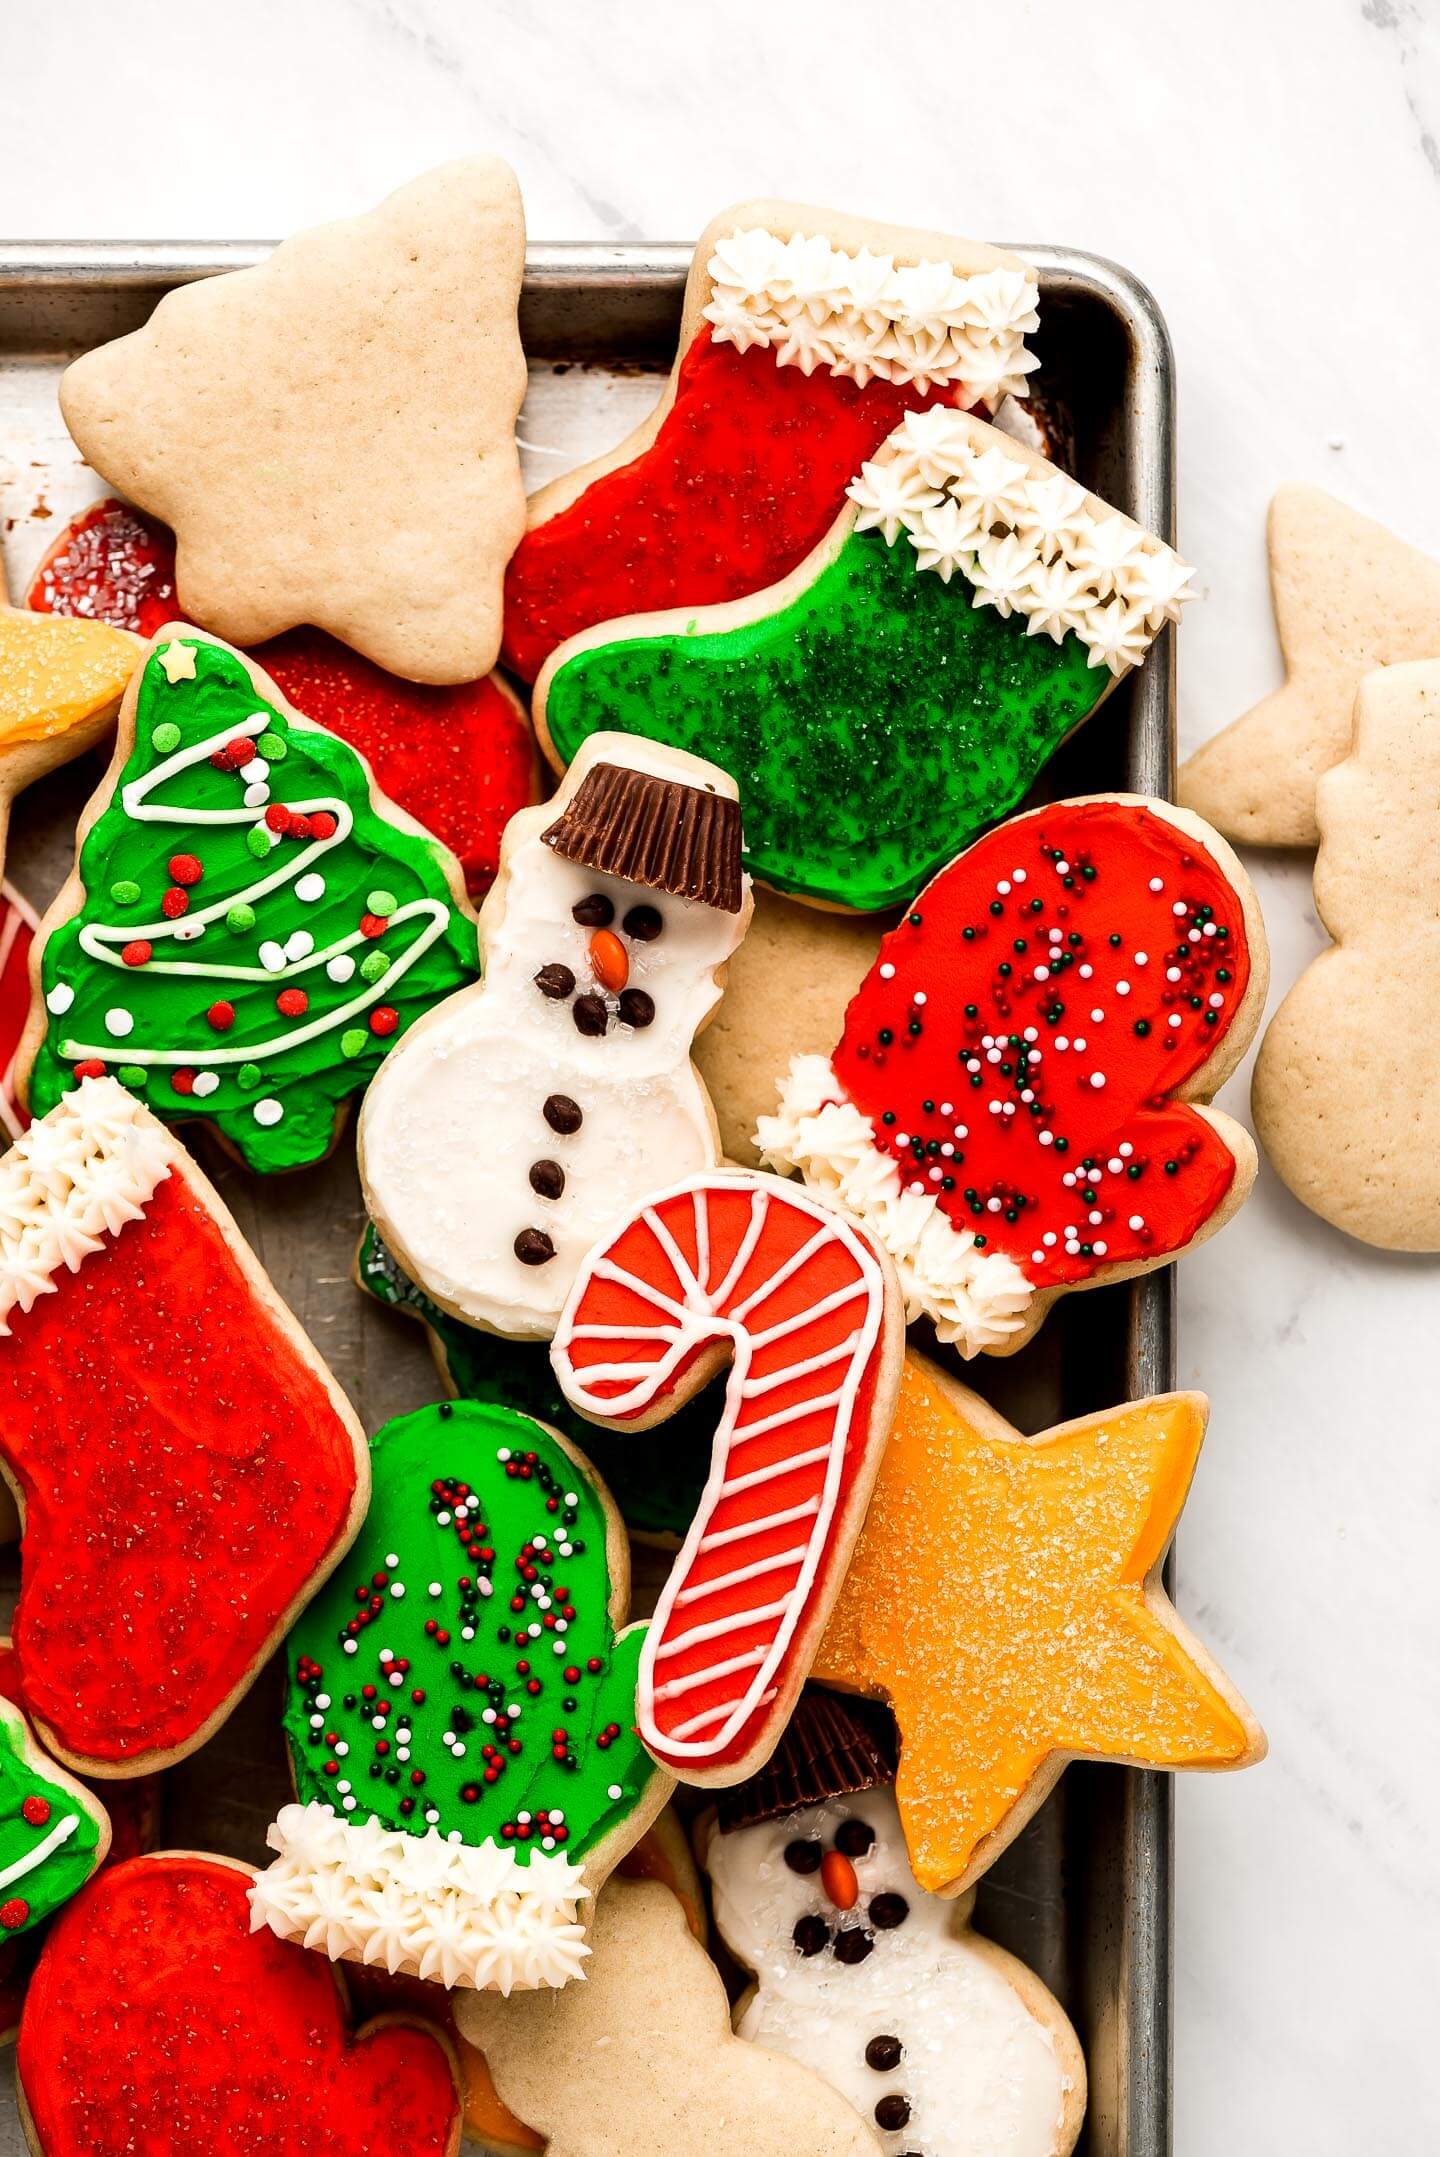 Many soft Sugar Cookies decorated for Christmas on a baking sheet.